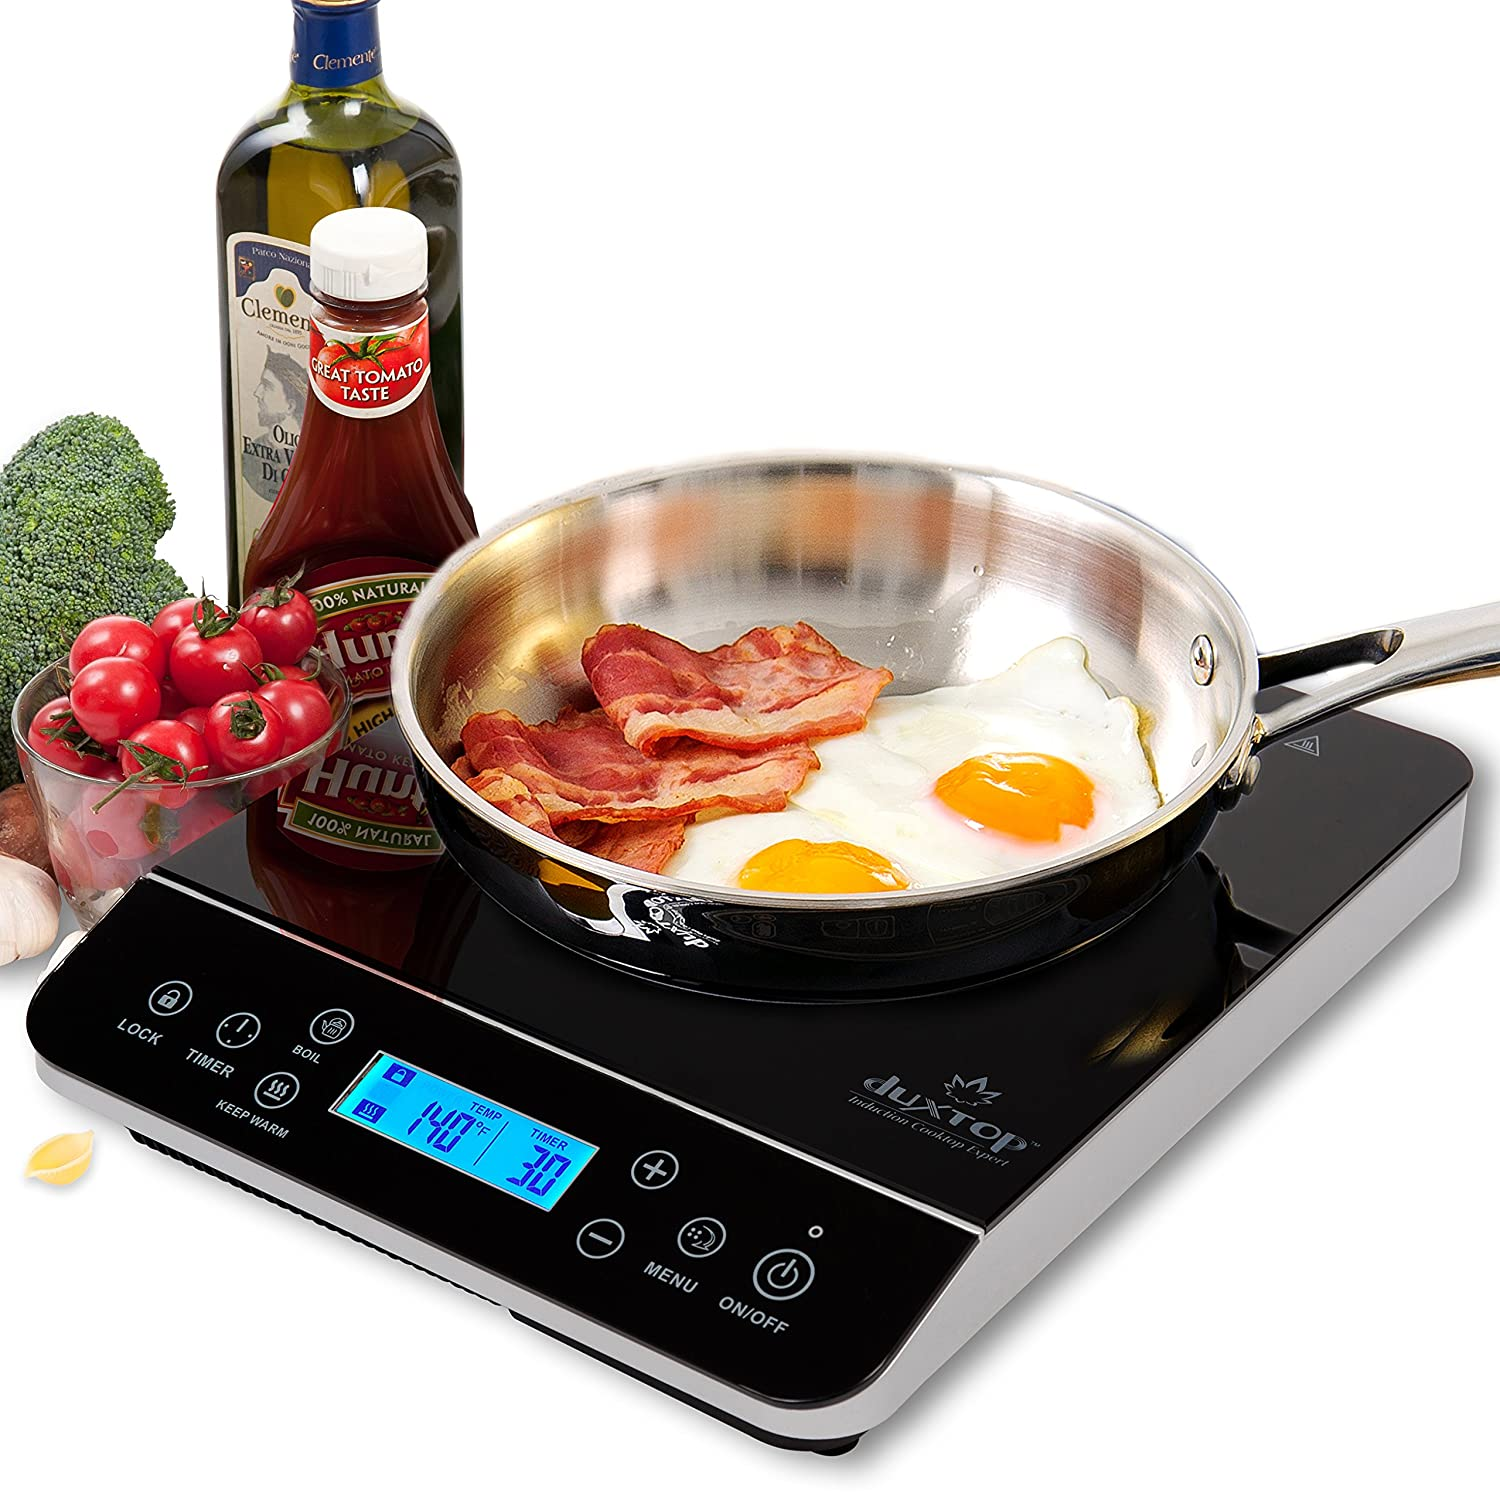 Amazon.com: Secura 8100MC 1800W Portable Induction Cooktop ...